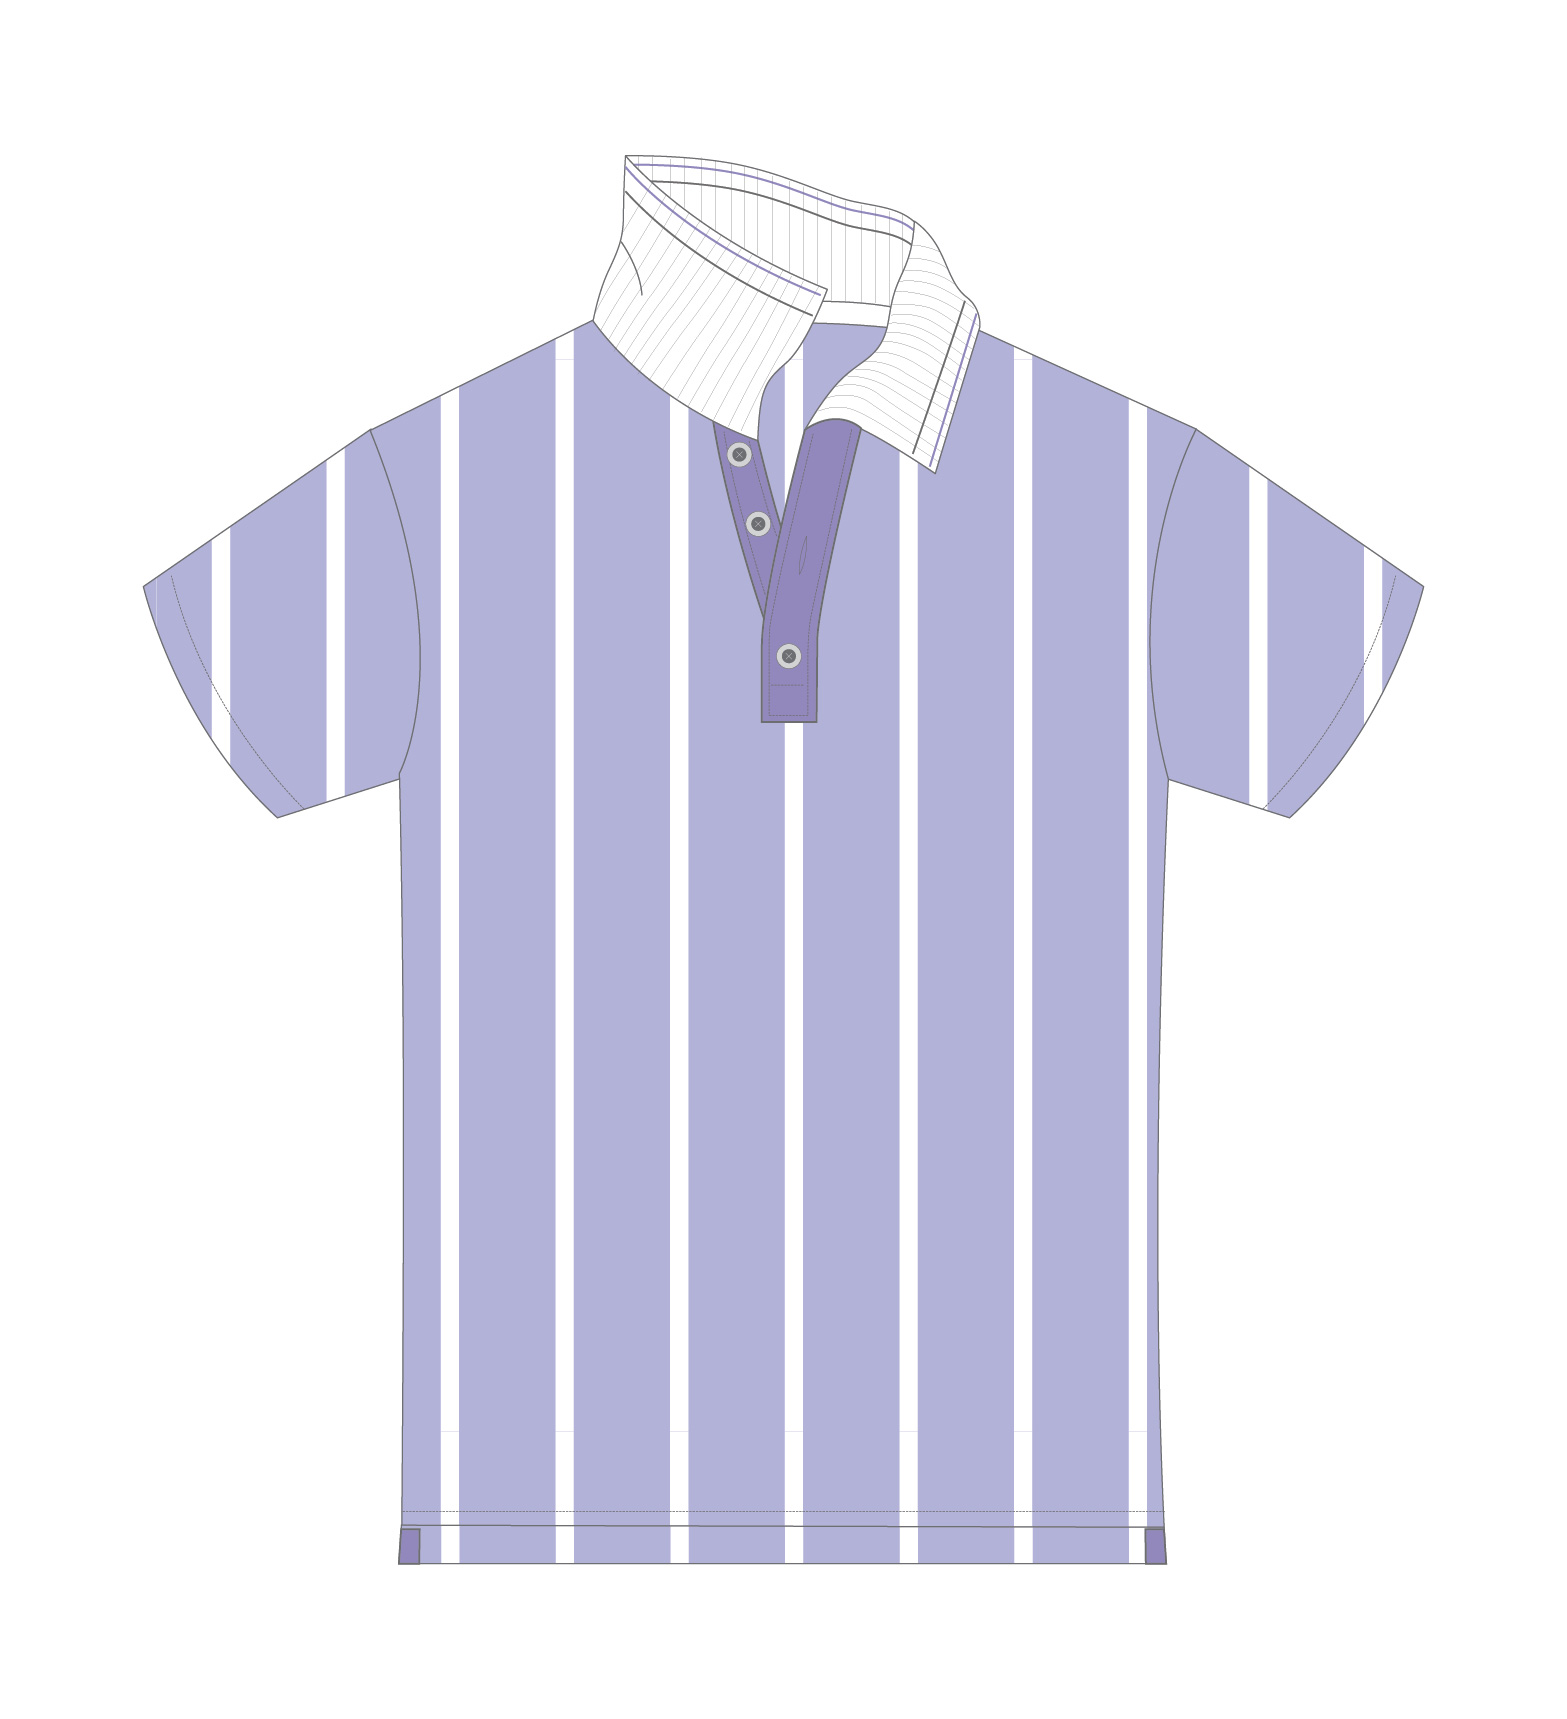 blue and white stripe tennis polo design sketch